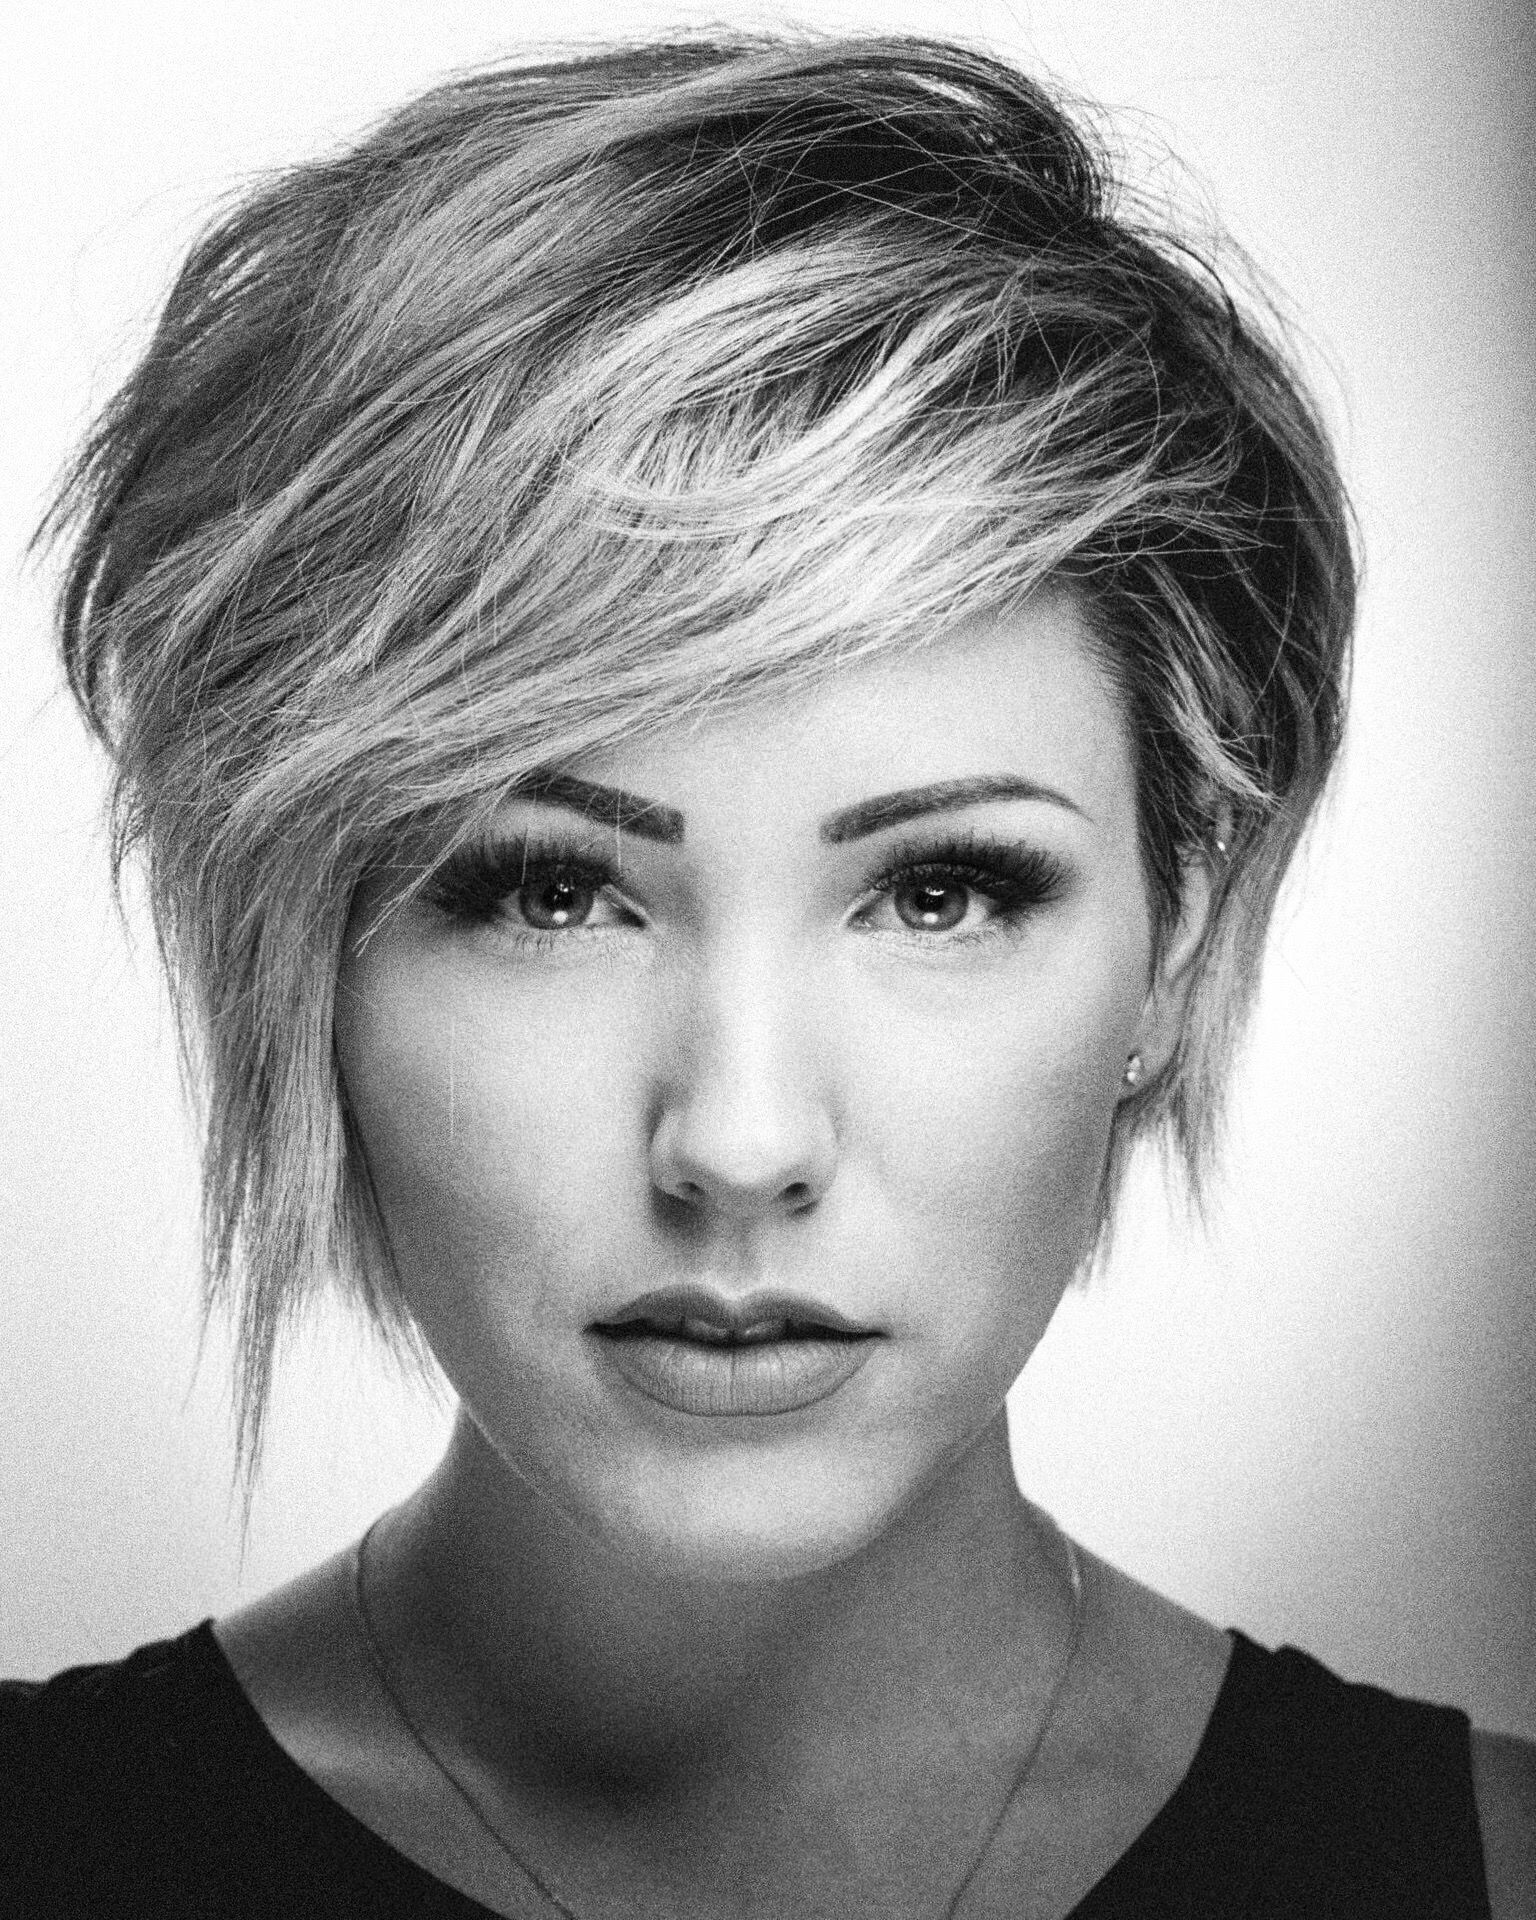 Pin by Abigail Filiaga on just be glamorous | Pinterest | Short hair ...